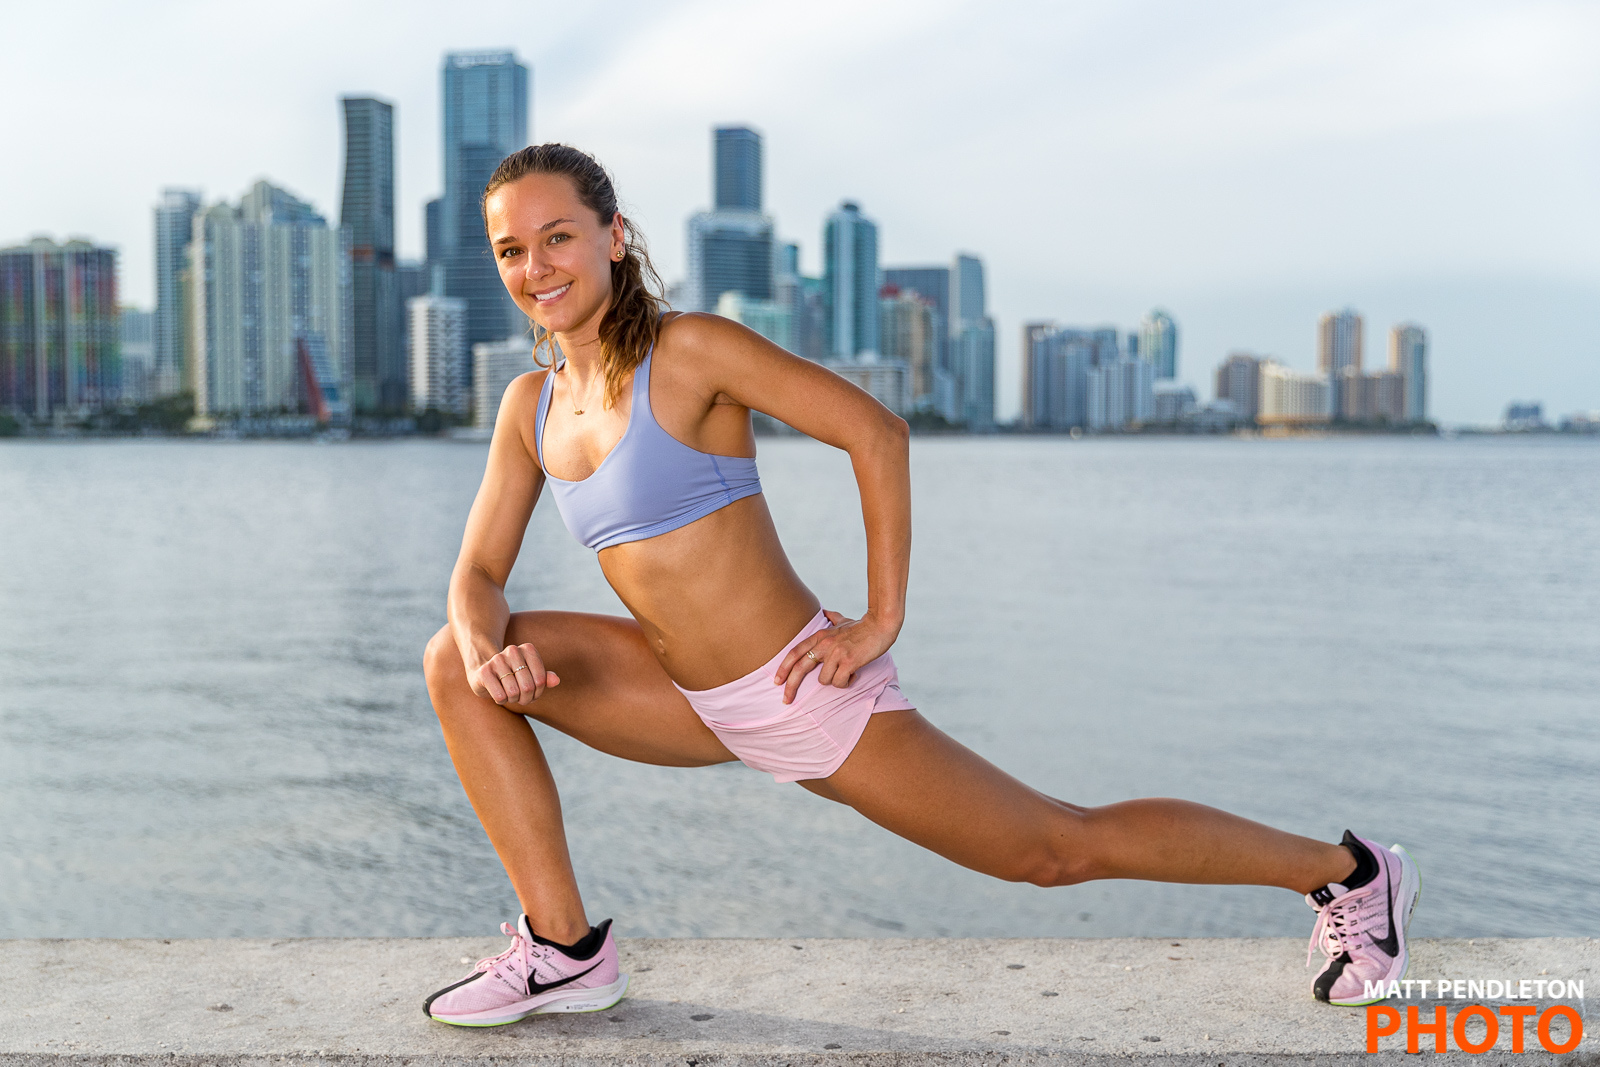 Fitness photo session with Lindsey Gass on Saturday, June 22, 2019 at the Rickenbacker Causeway in Miami, FL.